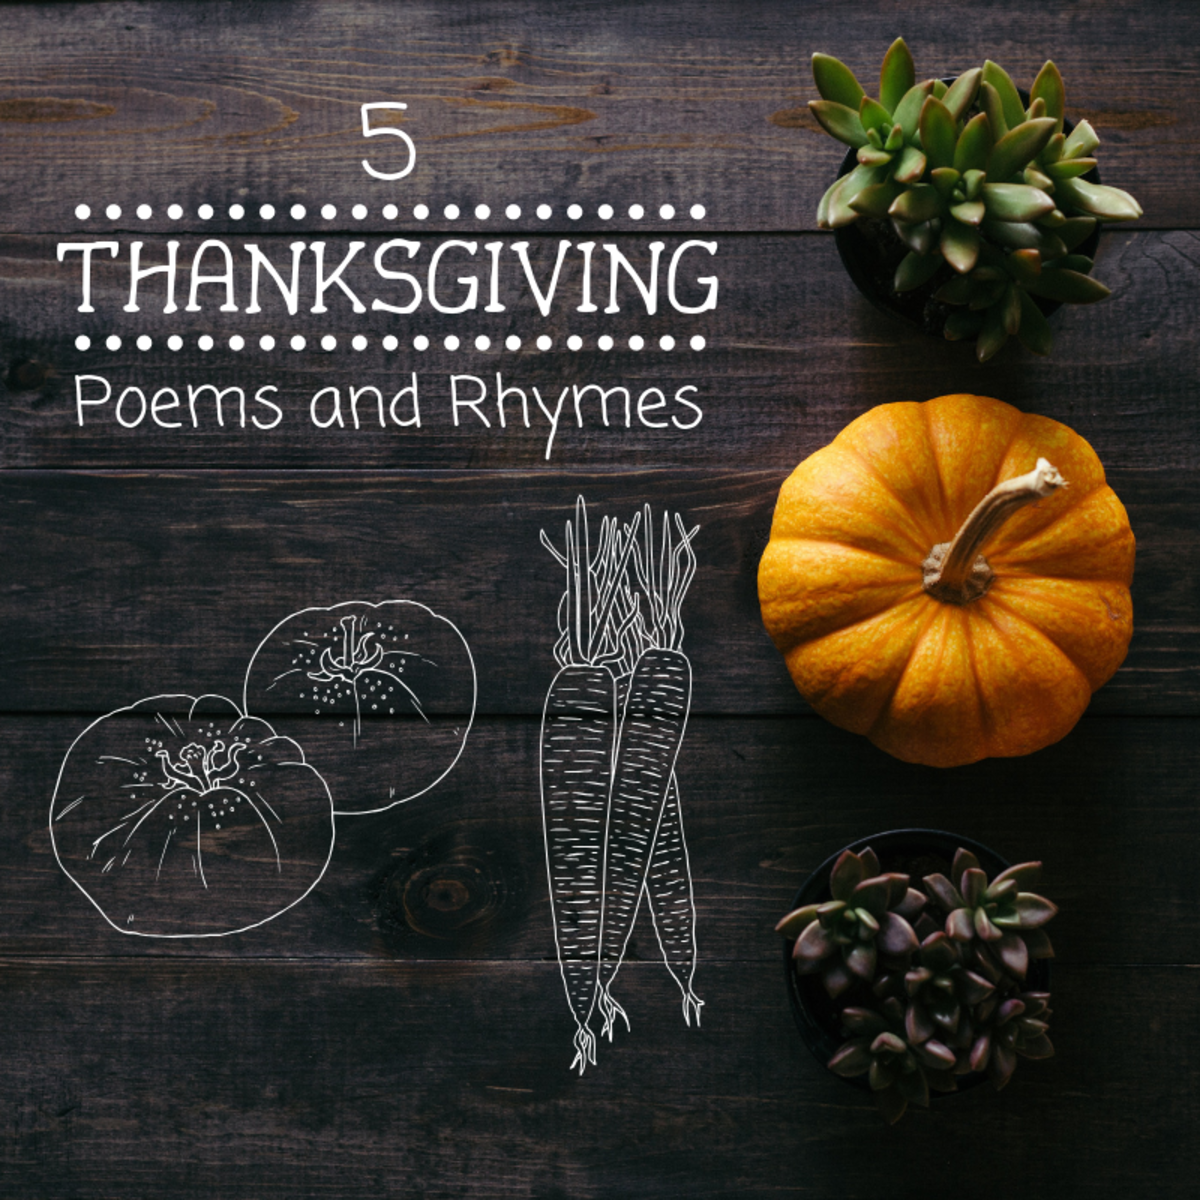 Poems are a great way to add some creativity and expression to your Thanksgiving celebration.